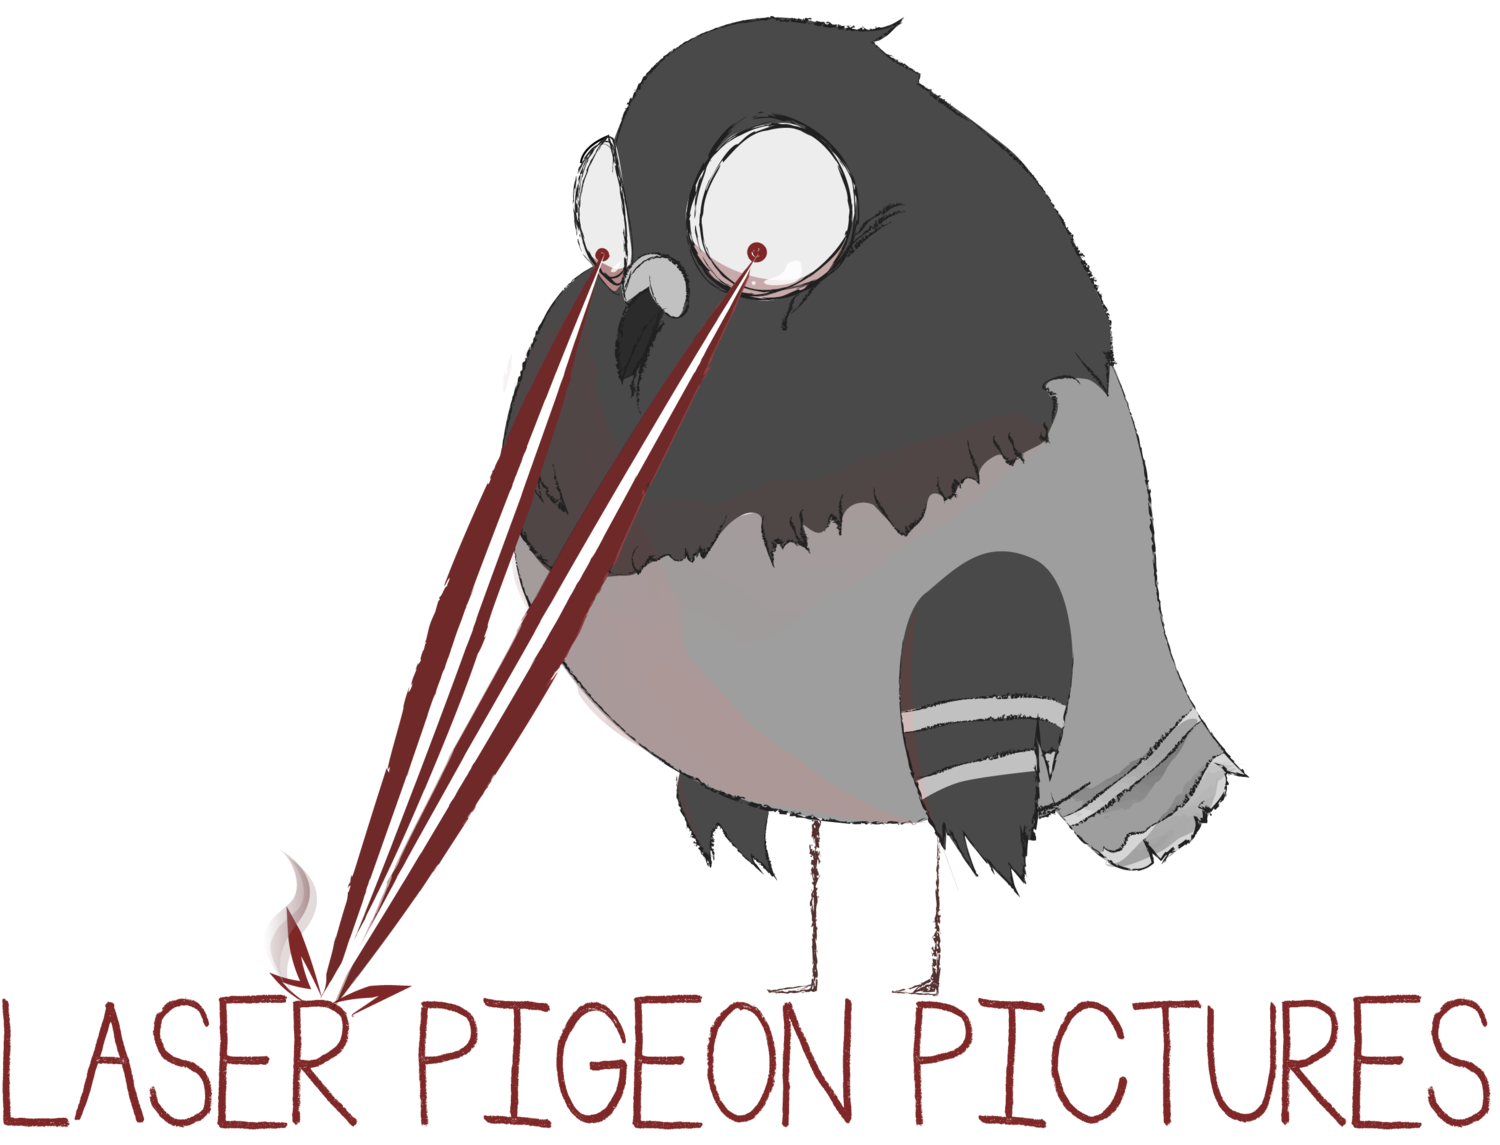 LASER PIGEON PICTURES